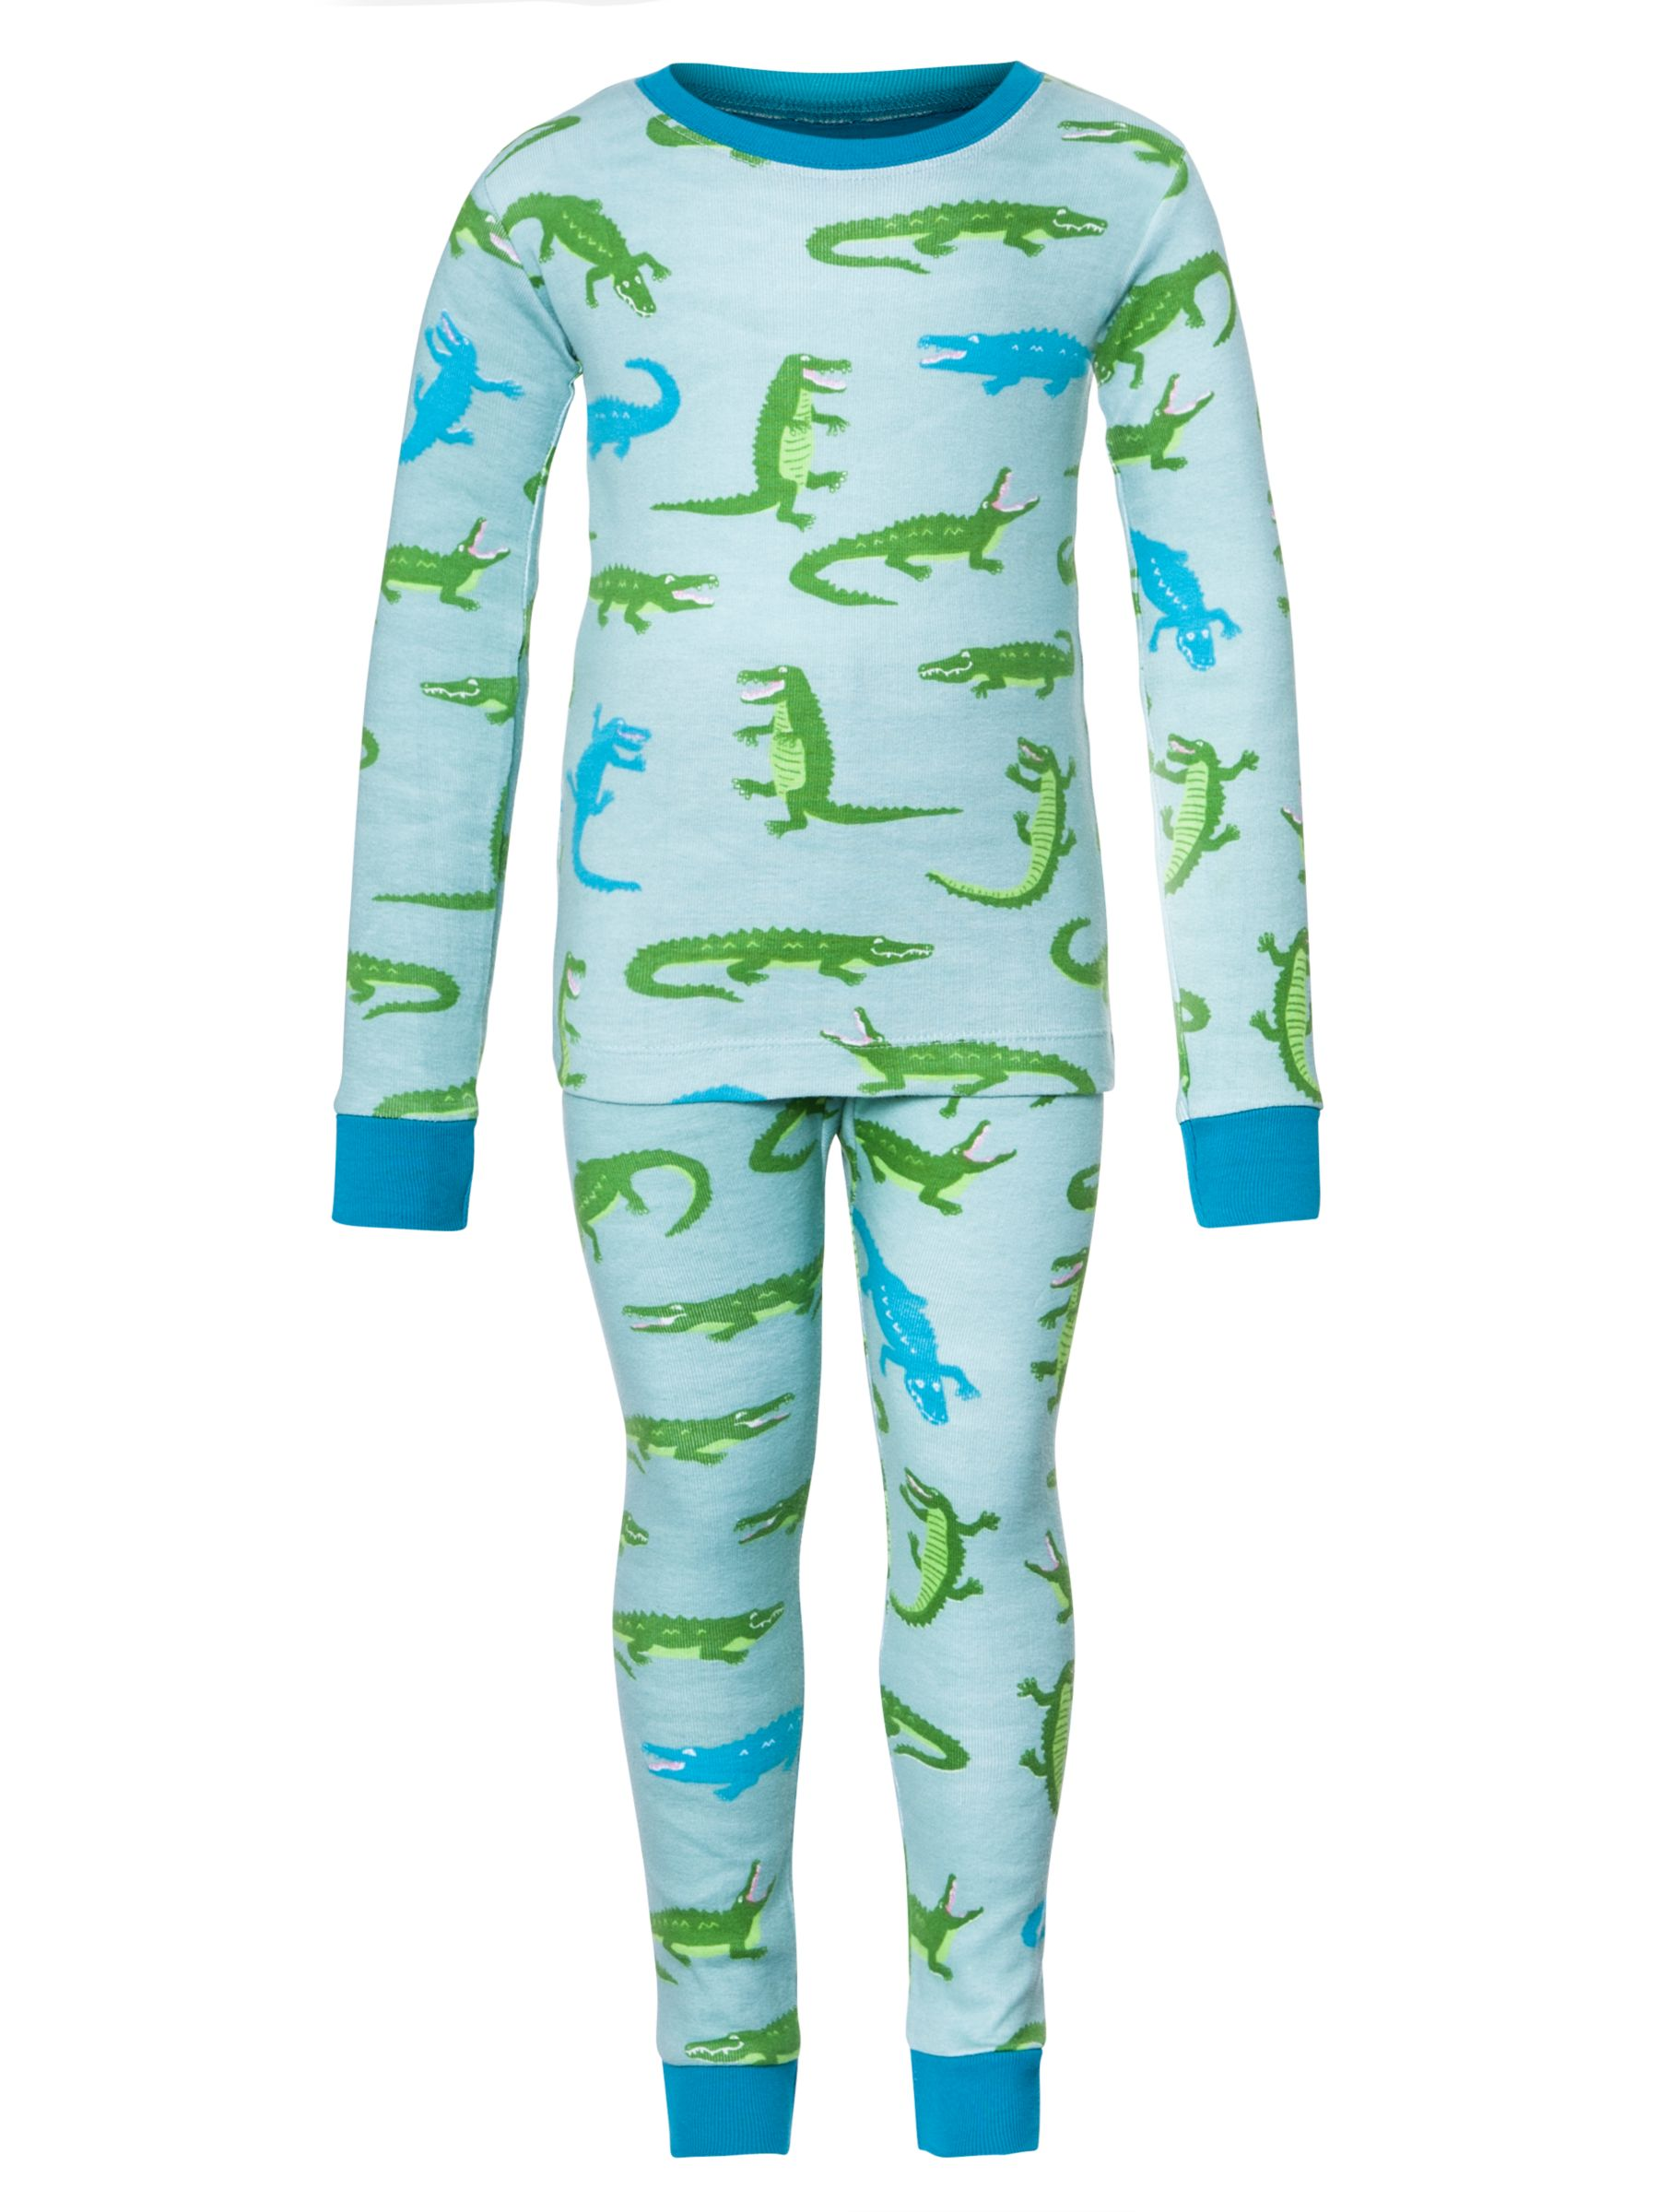 Hatley Boys' Crocodile Pyjamas, Green